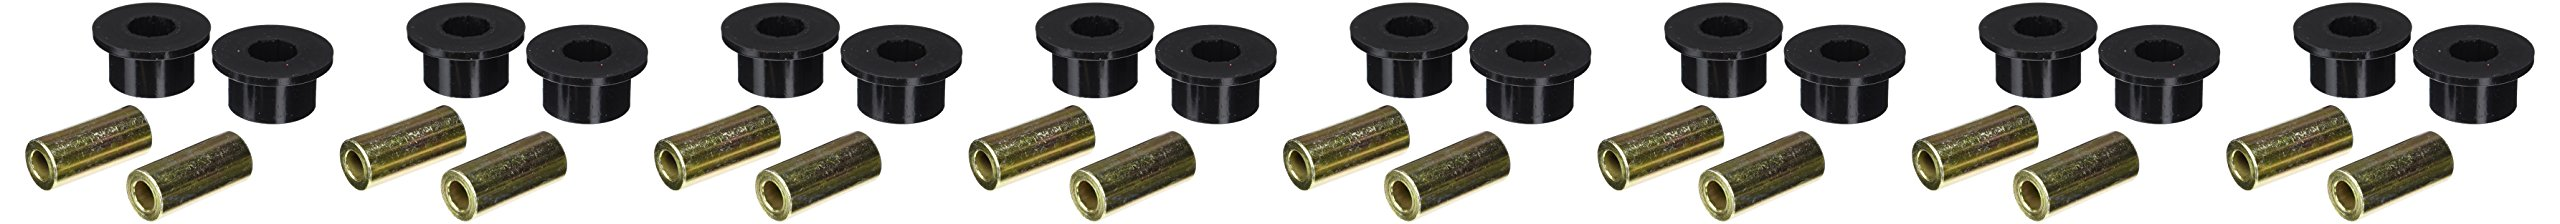 Fabtech FTS98011 Bushing Kit by Fabtech (Image #1)